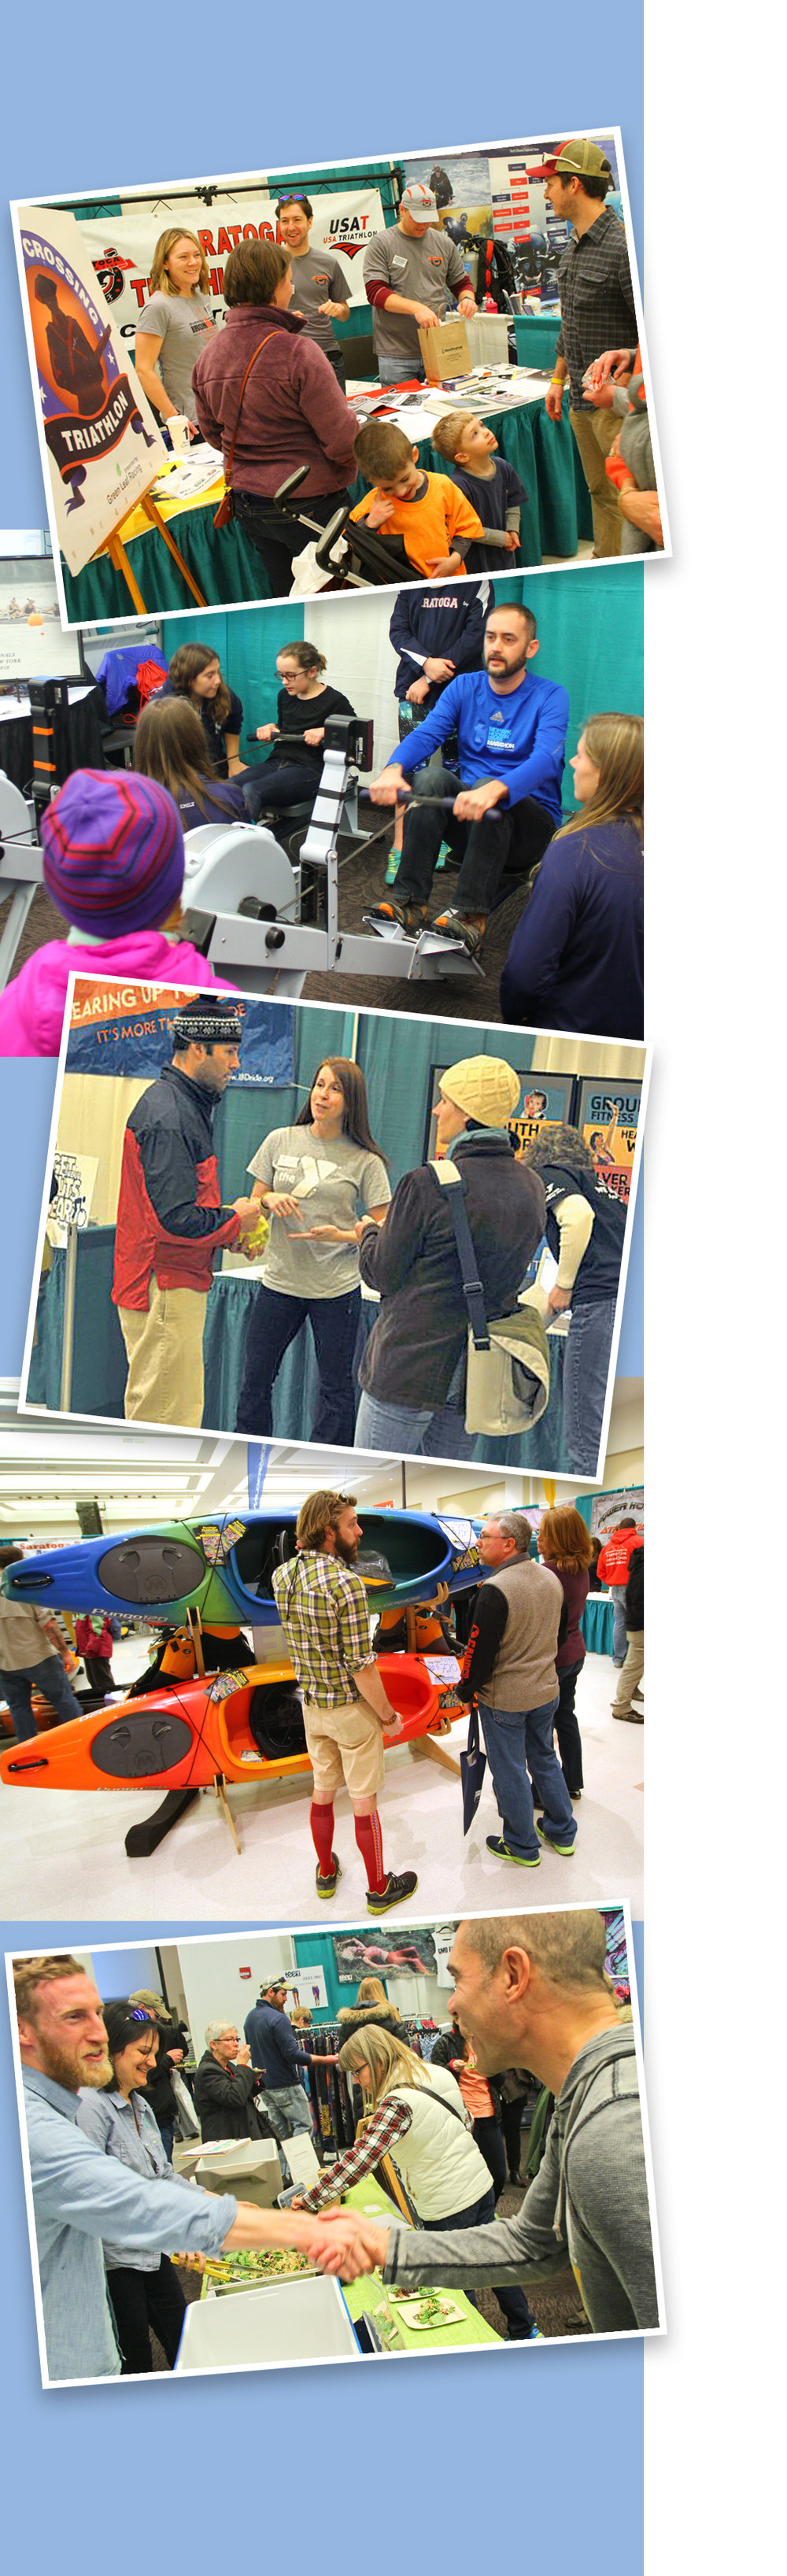 adk-sports-winter-expo-action.jpg